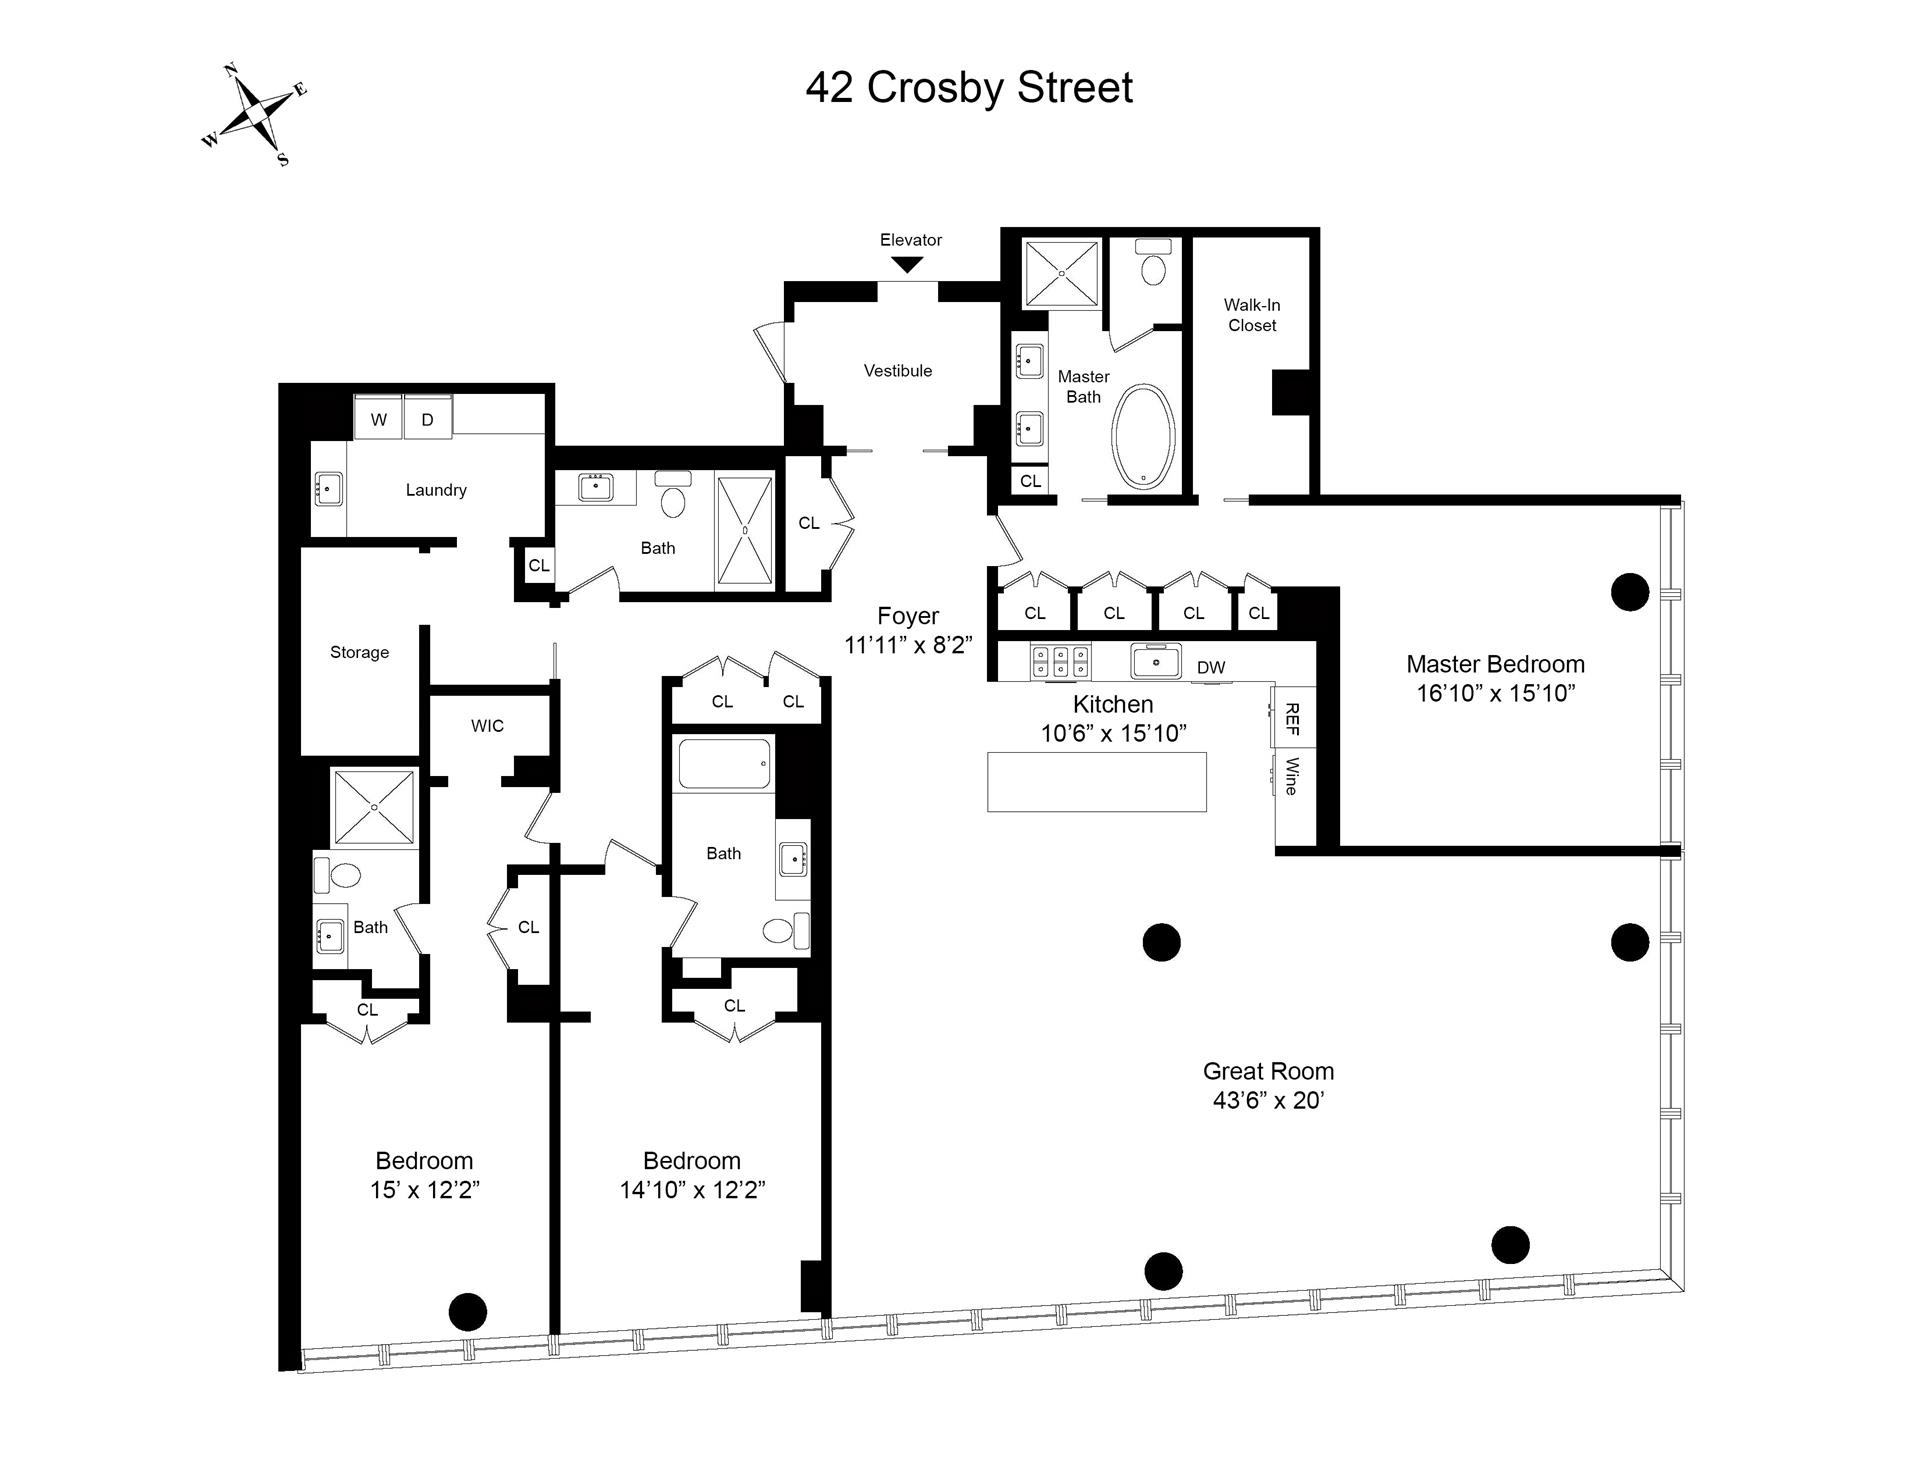 Floor plan of 42 Crosby St, 2S - SoHo - Nolita, New York